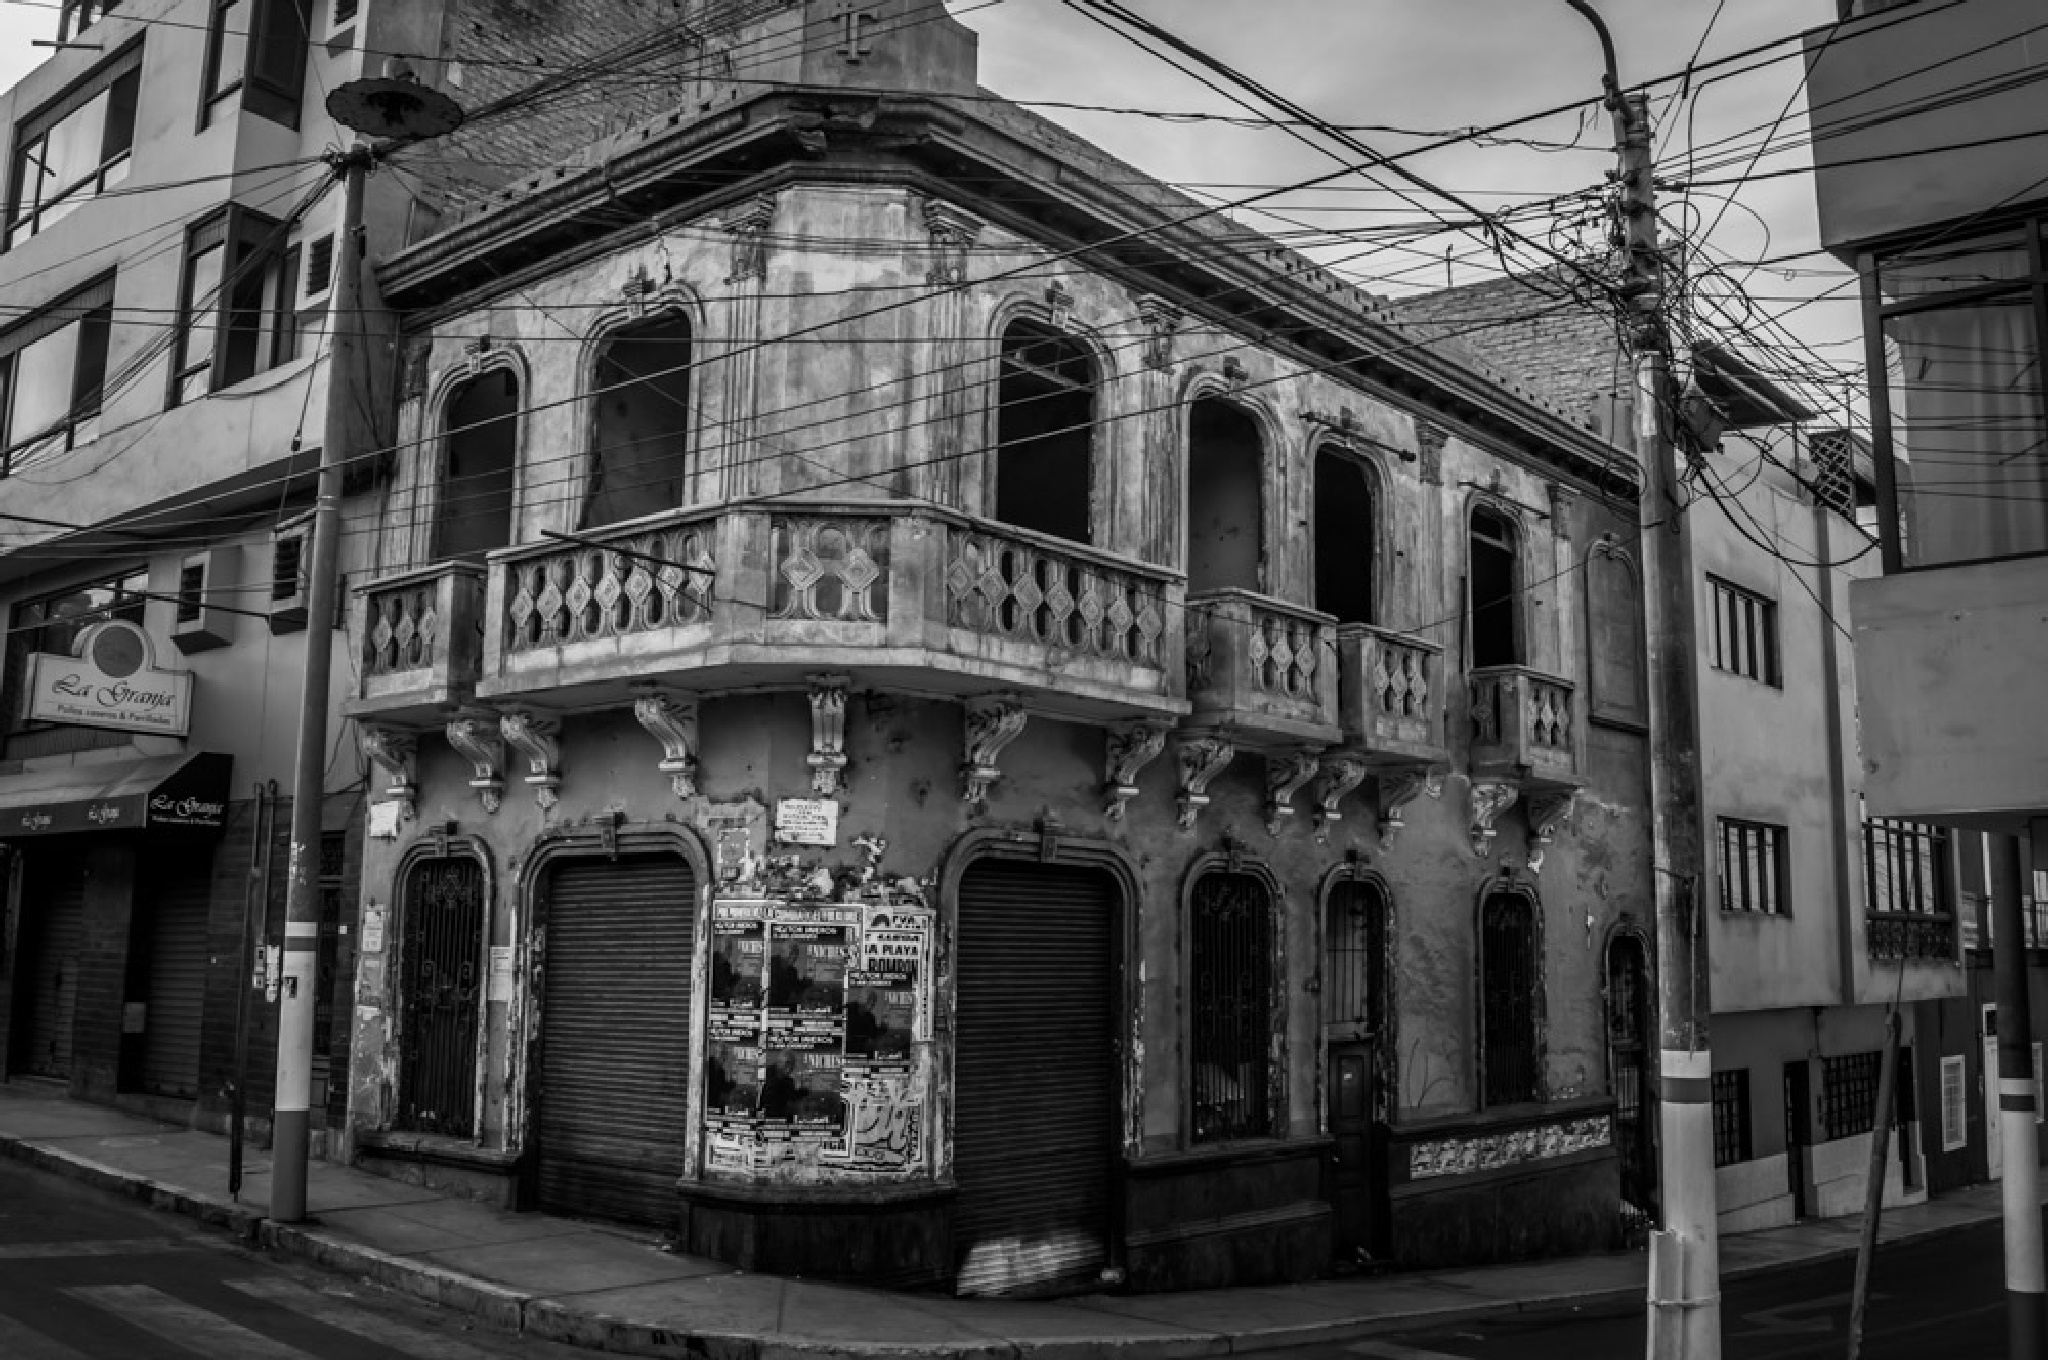 Abandoned. by Gustavo1965